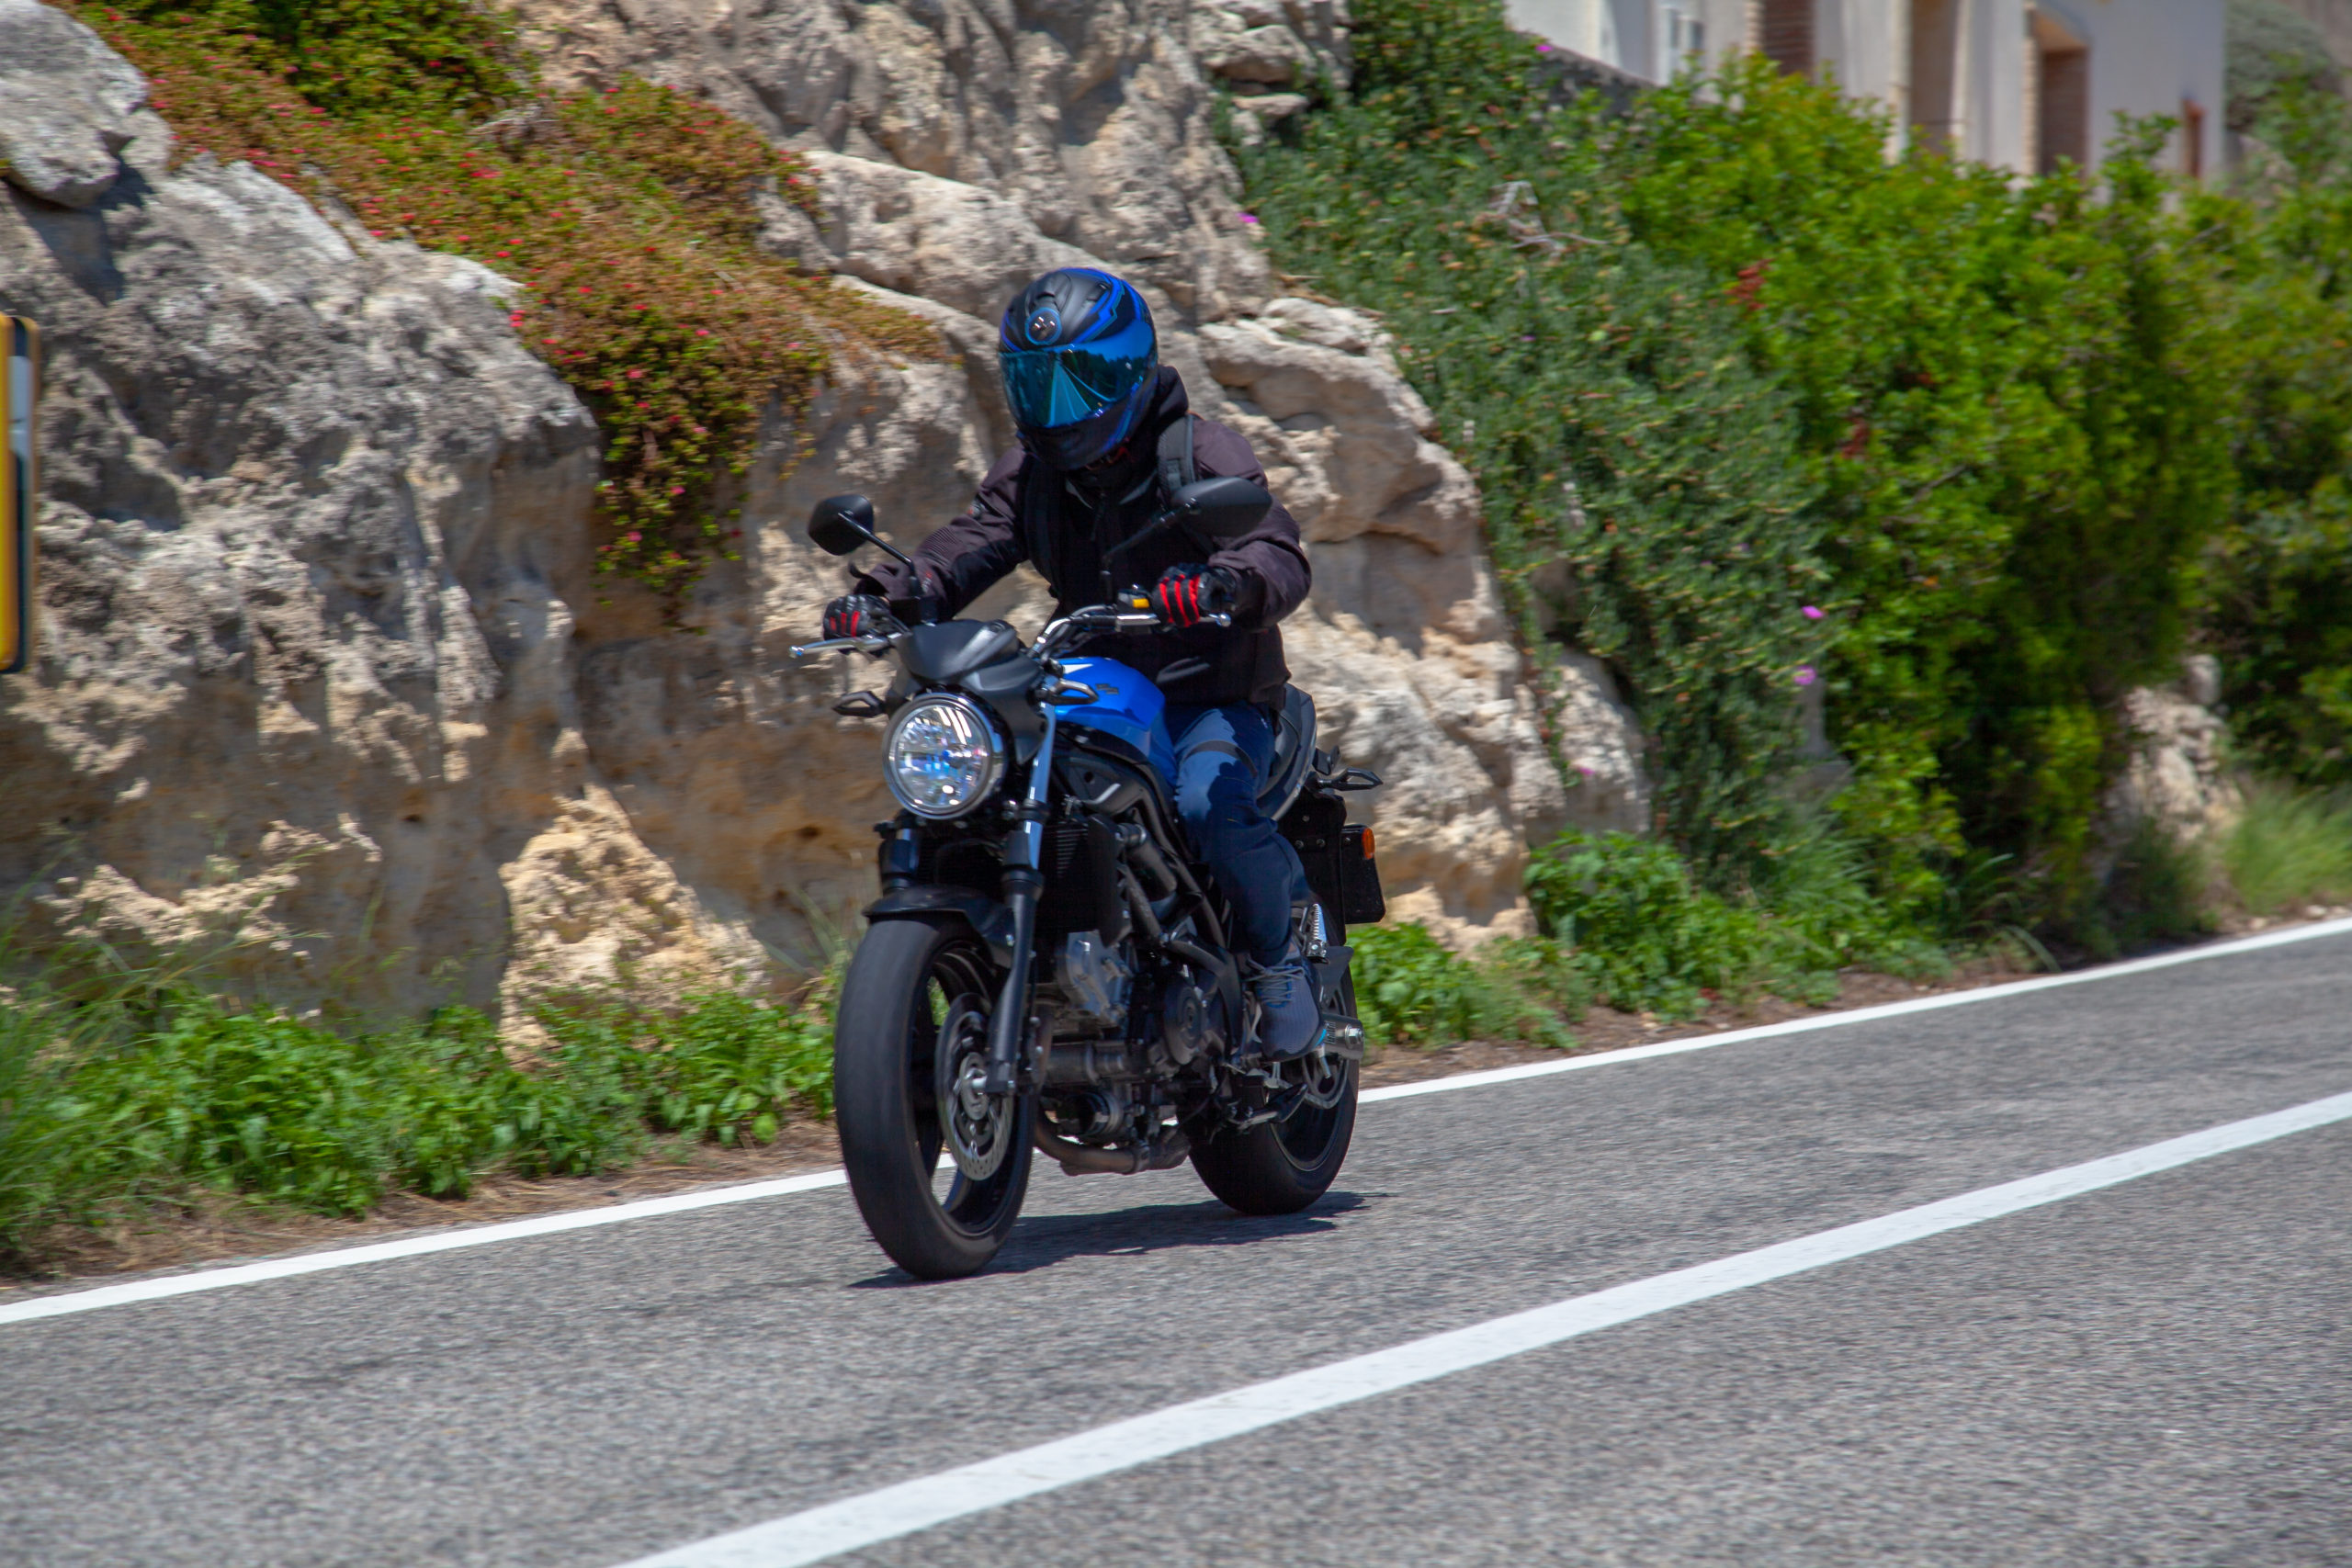 man riding on a blue motorcycle with a blue helmet